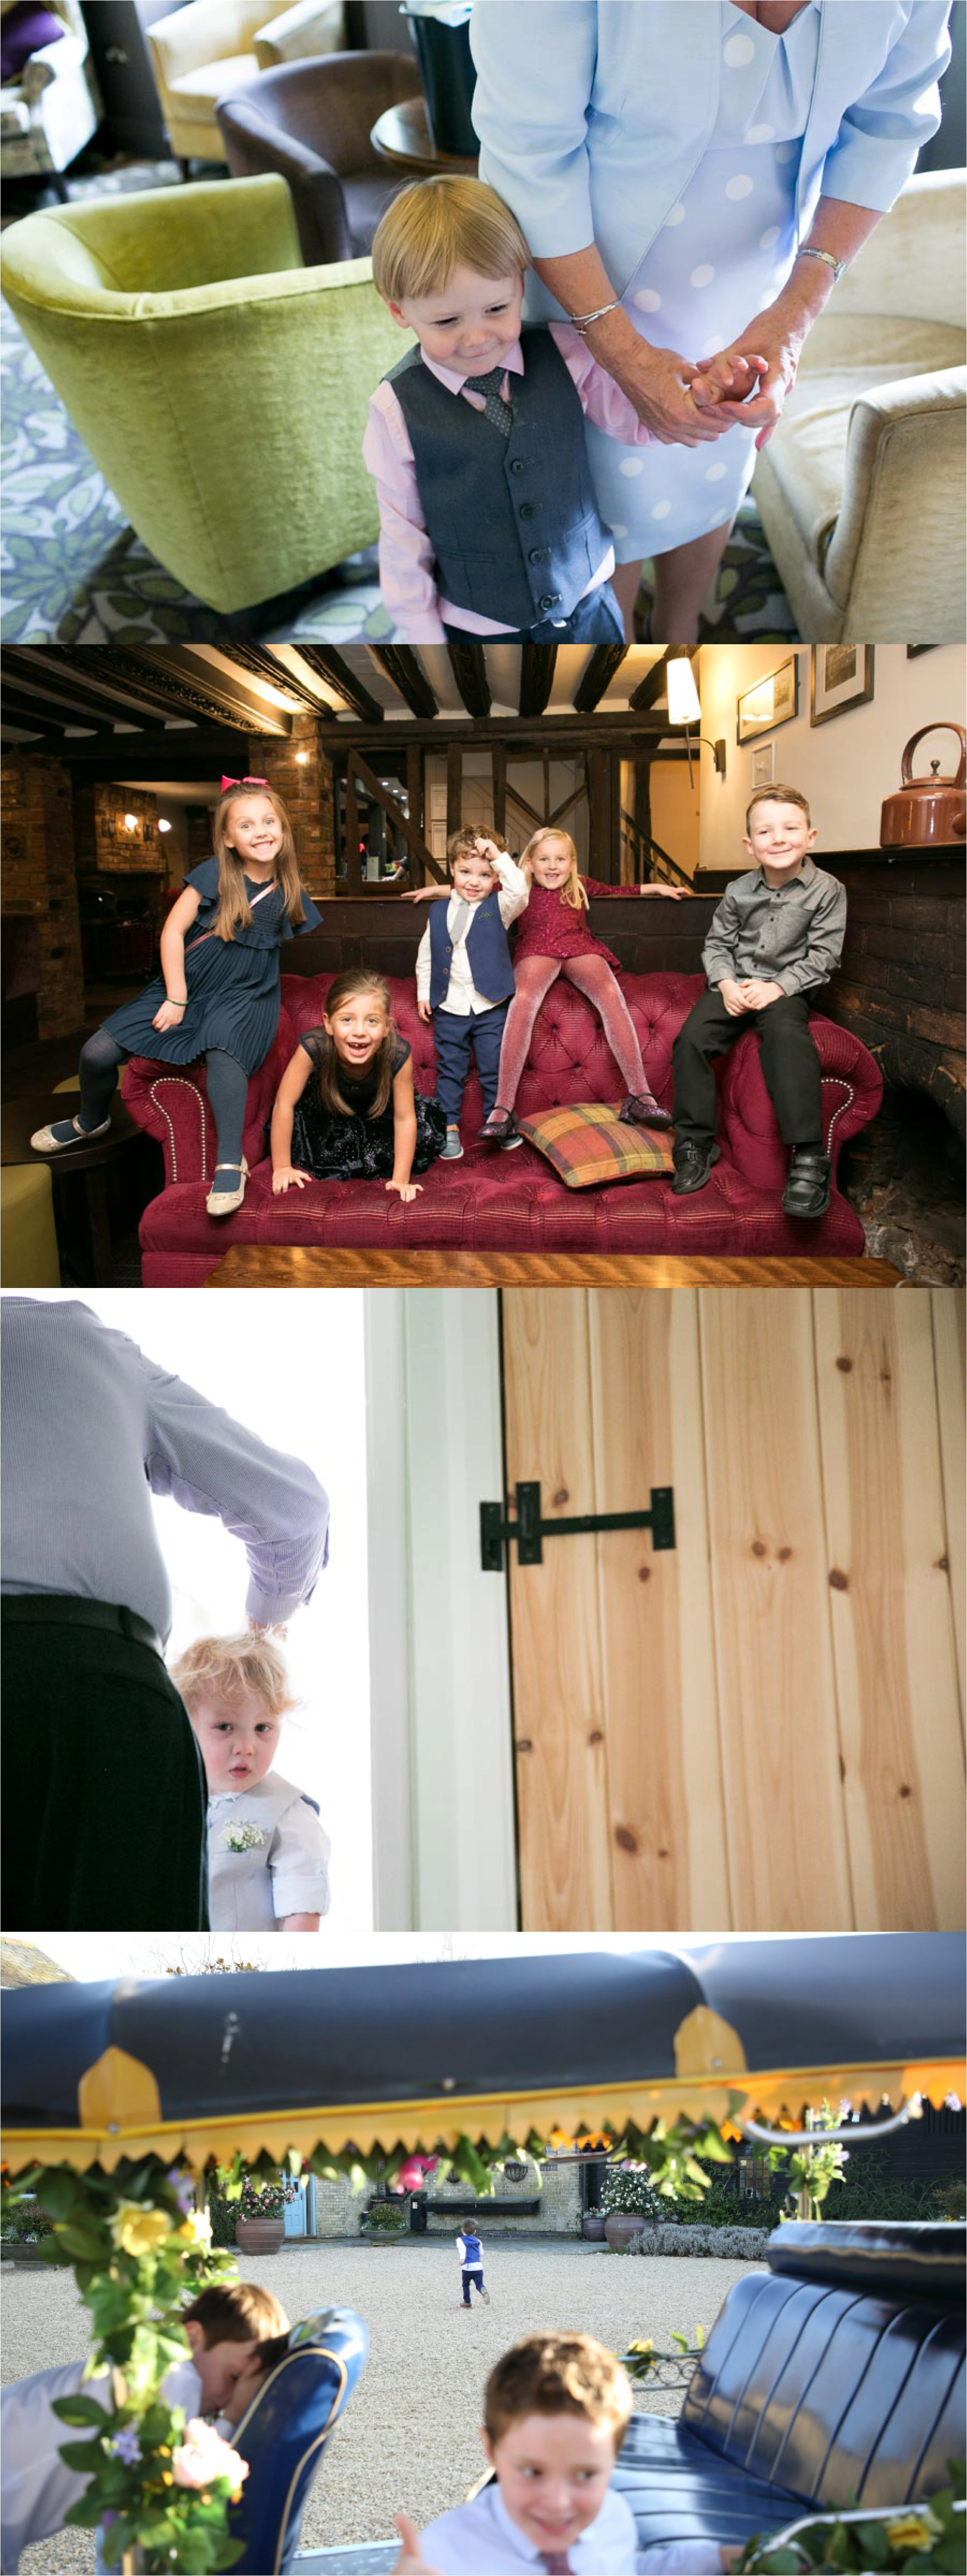 documentary wedding photography of children at weddings, having children at your wedding